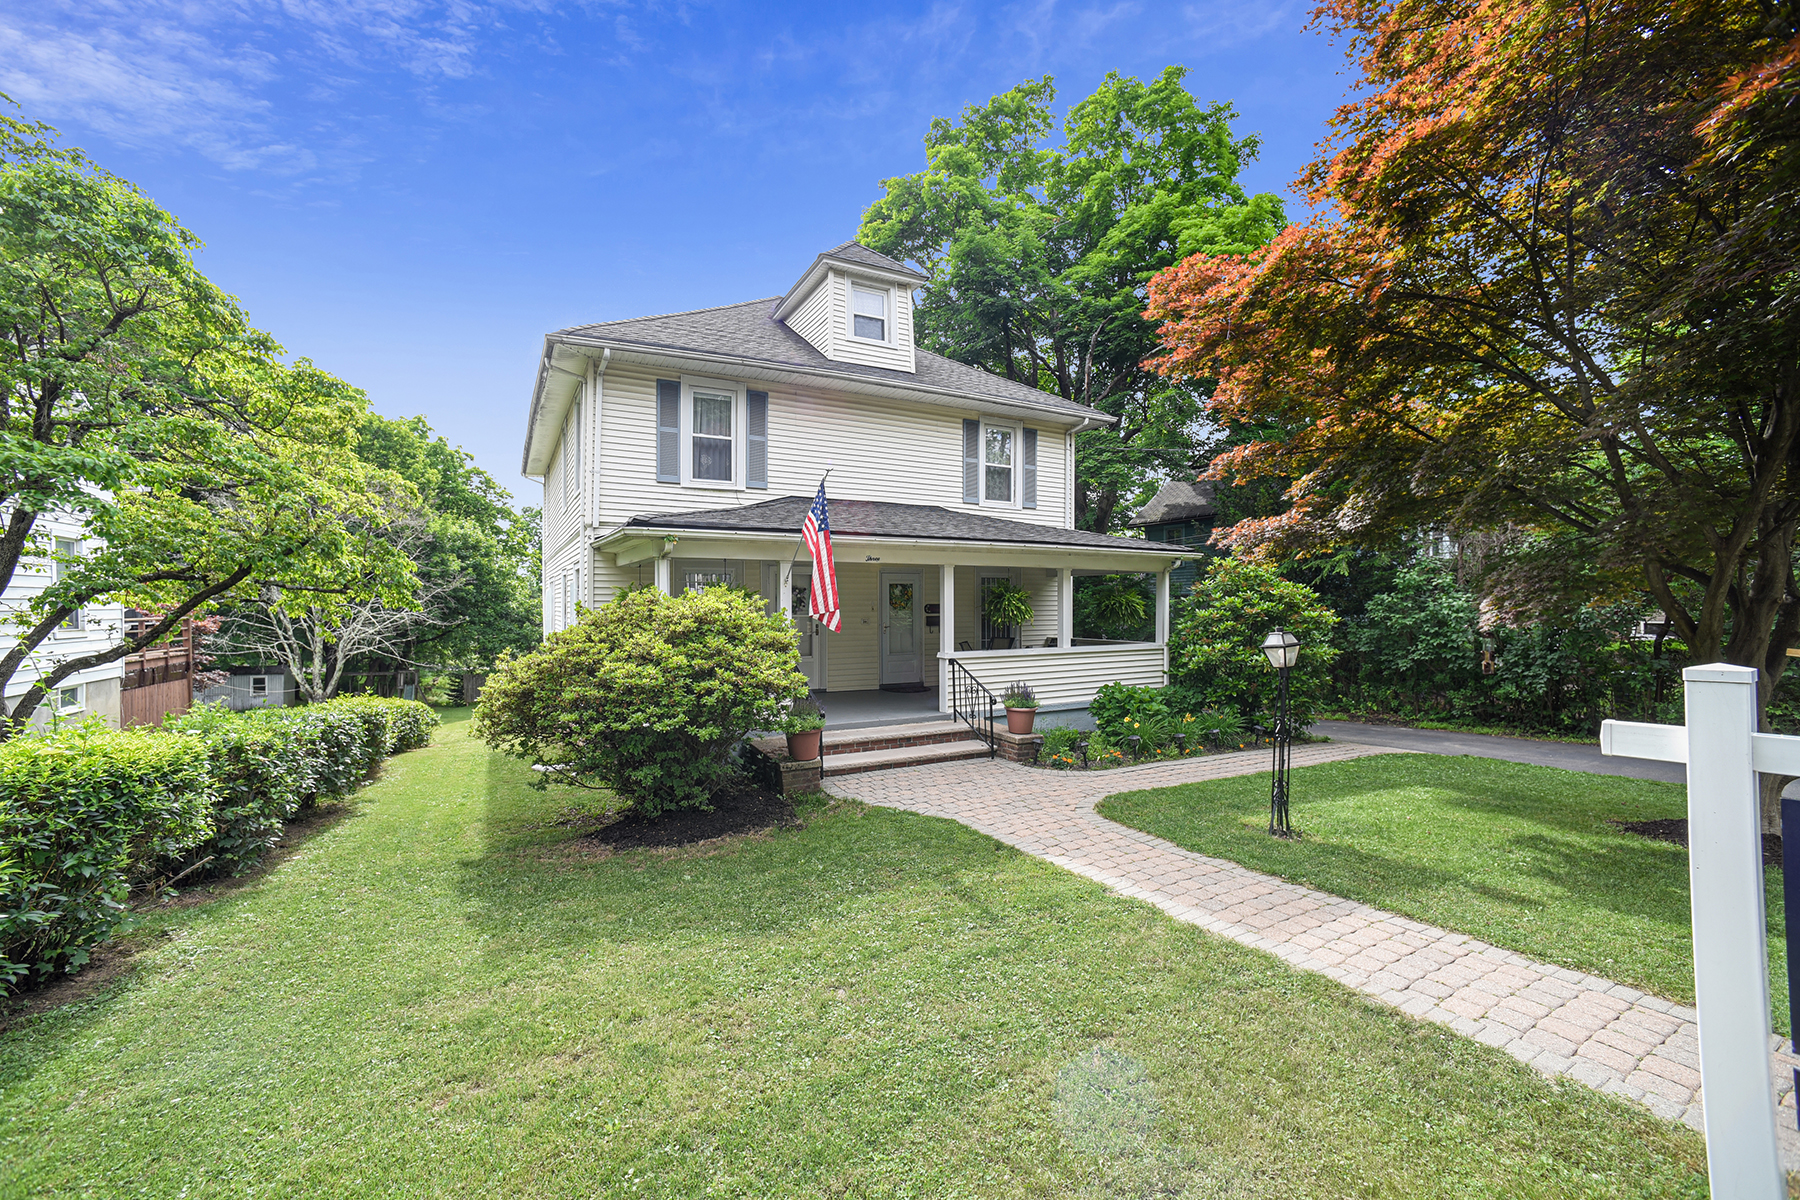 Single Family Homes for Active at Charming Colonial Home 3 Hampton Road Mendham, New Jersey 07945 United States